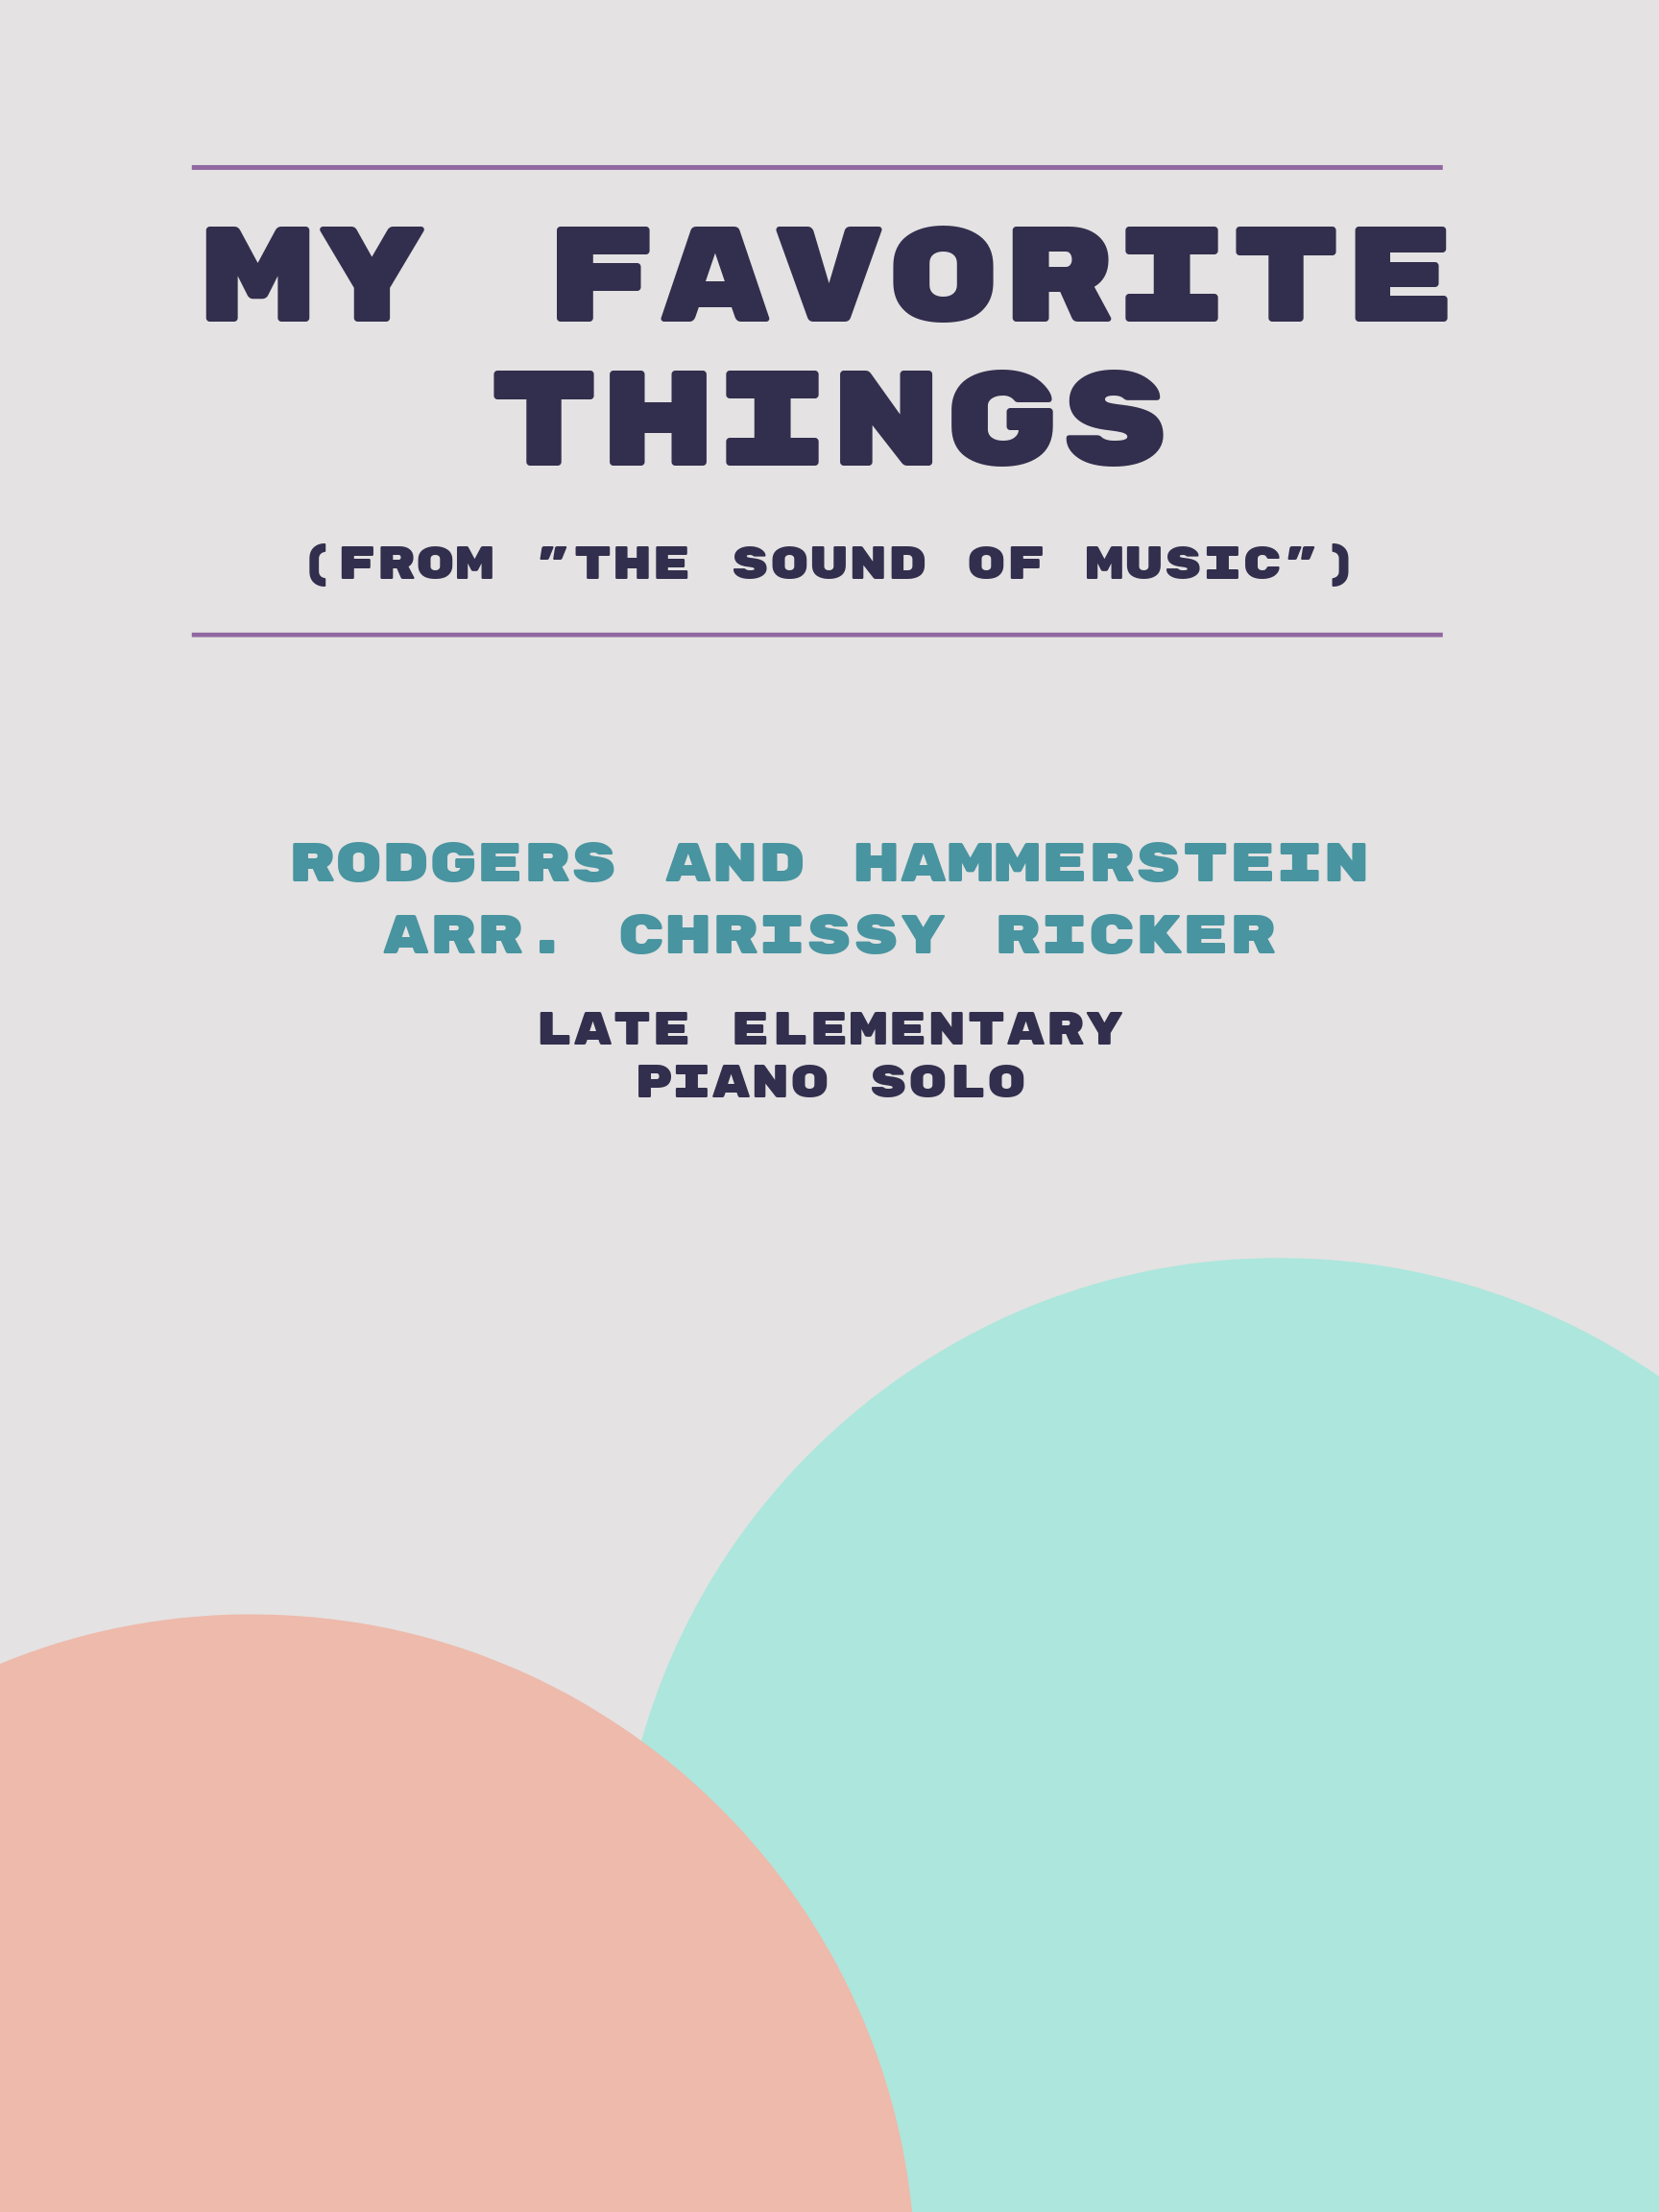 My Favorite Things by Rodgers and Hammerstein